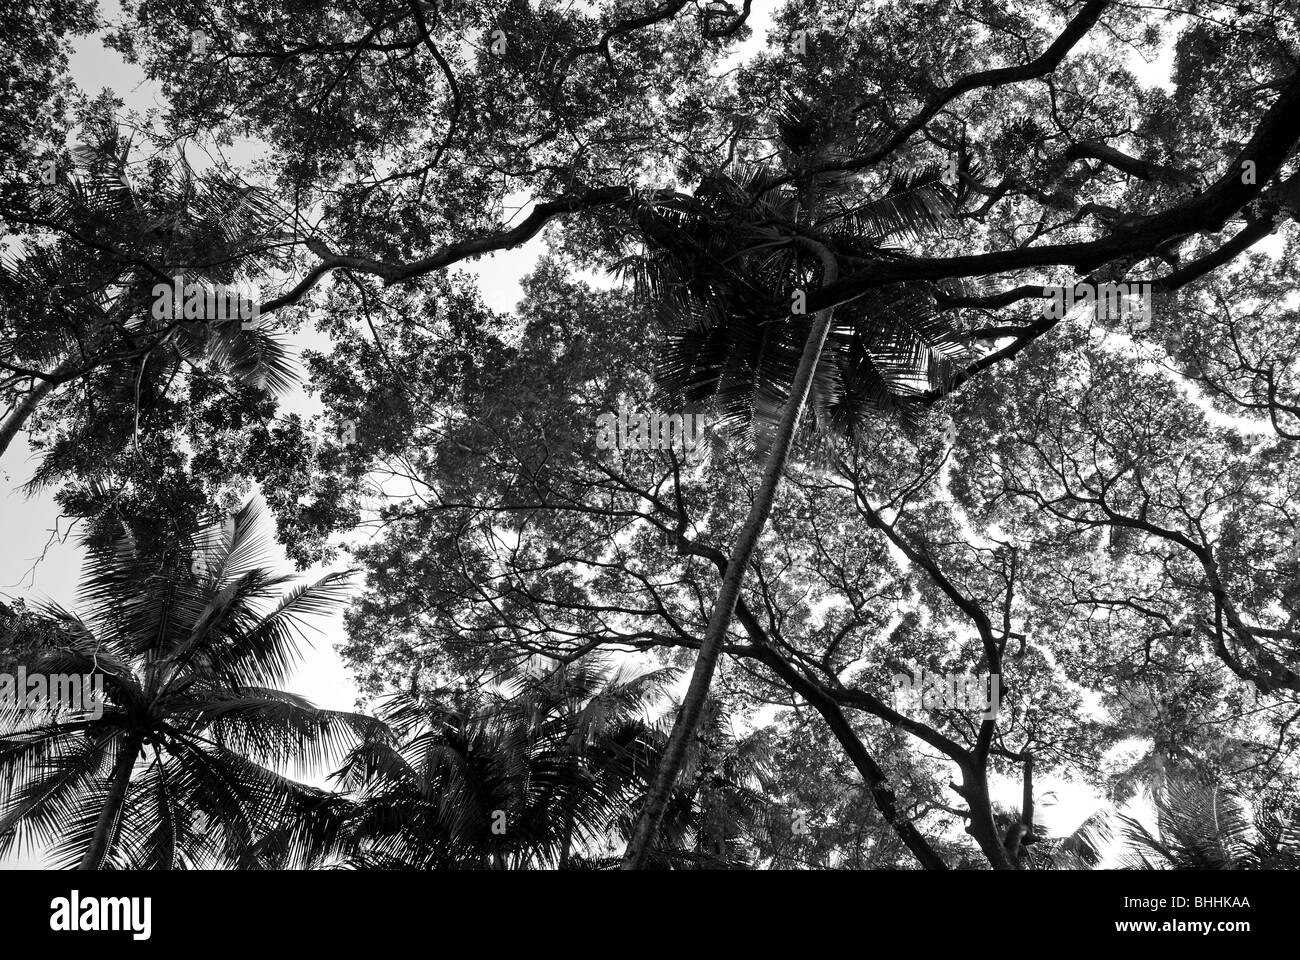 Tree branches seen from bellow in Goa, India. - Stock Image